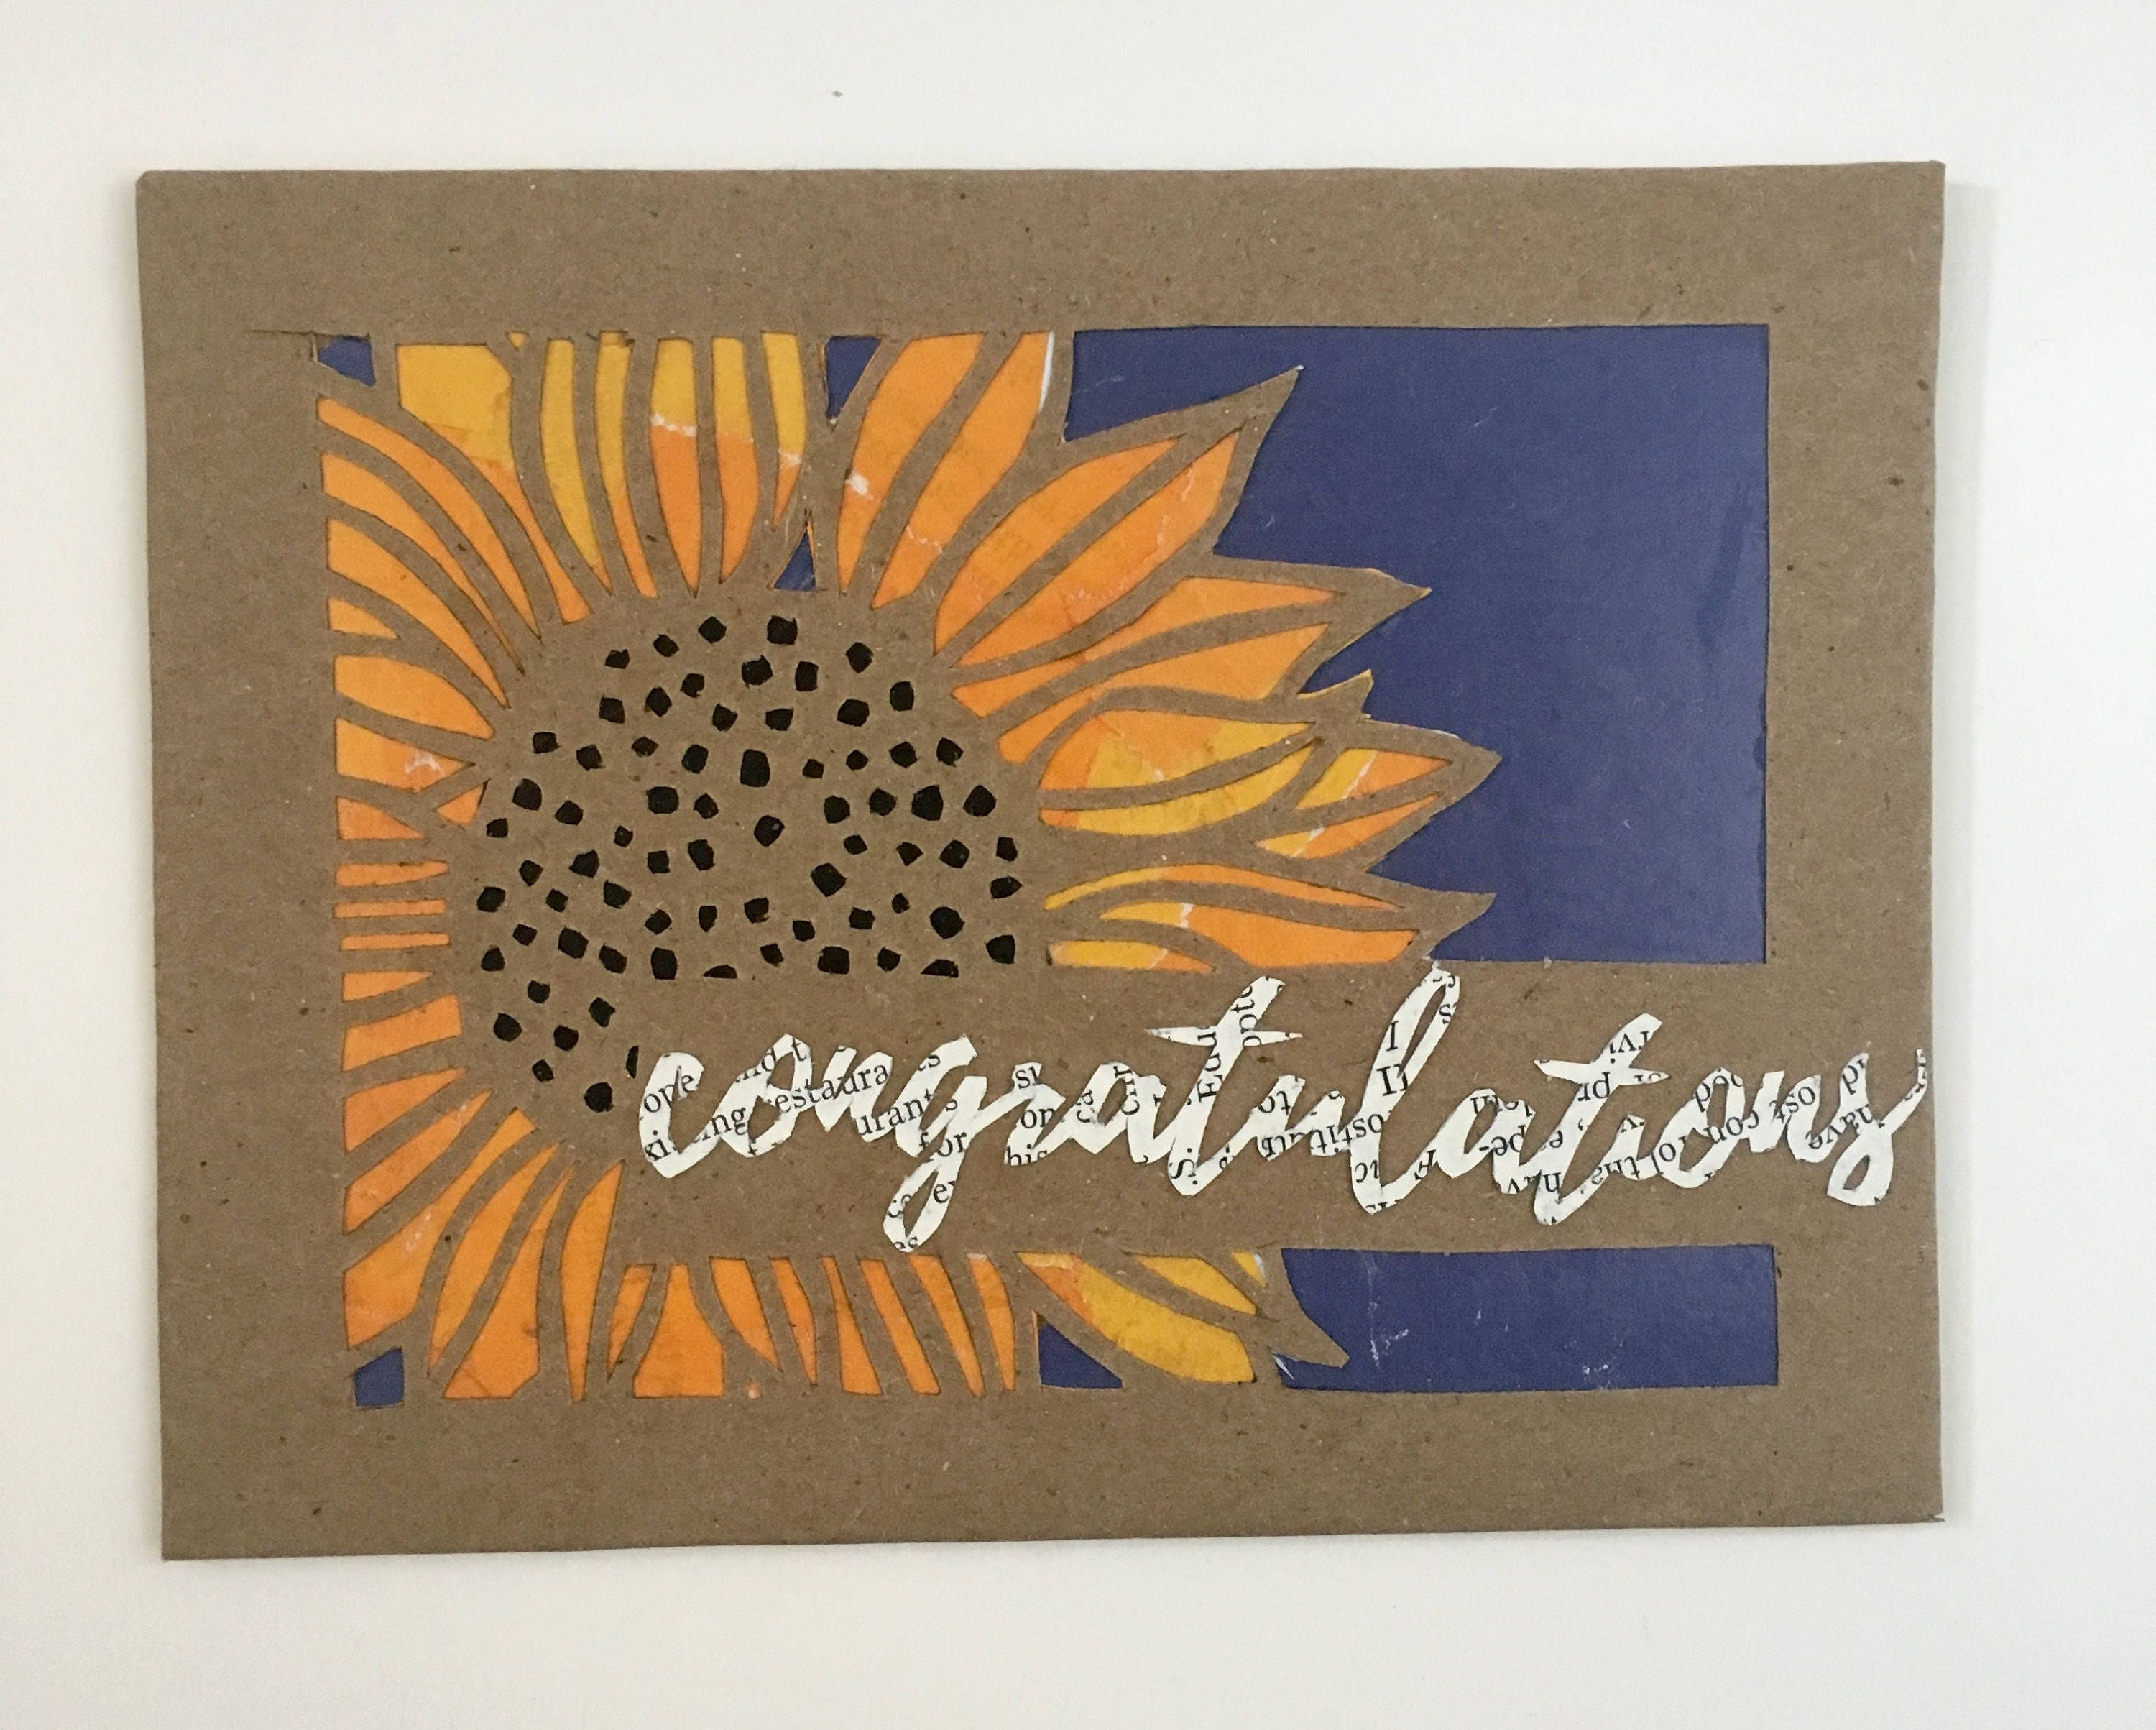 Congratulations wedding card handmade greeting cards fall wedding congratulations wedding card handmade greeting cards fall wedding greeting card engagement card baby announcement upcycled recycled kristyandbryce Choice Image